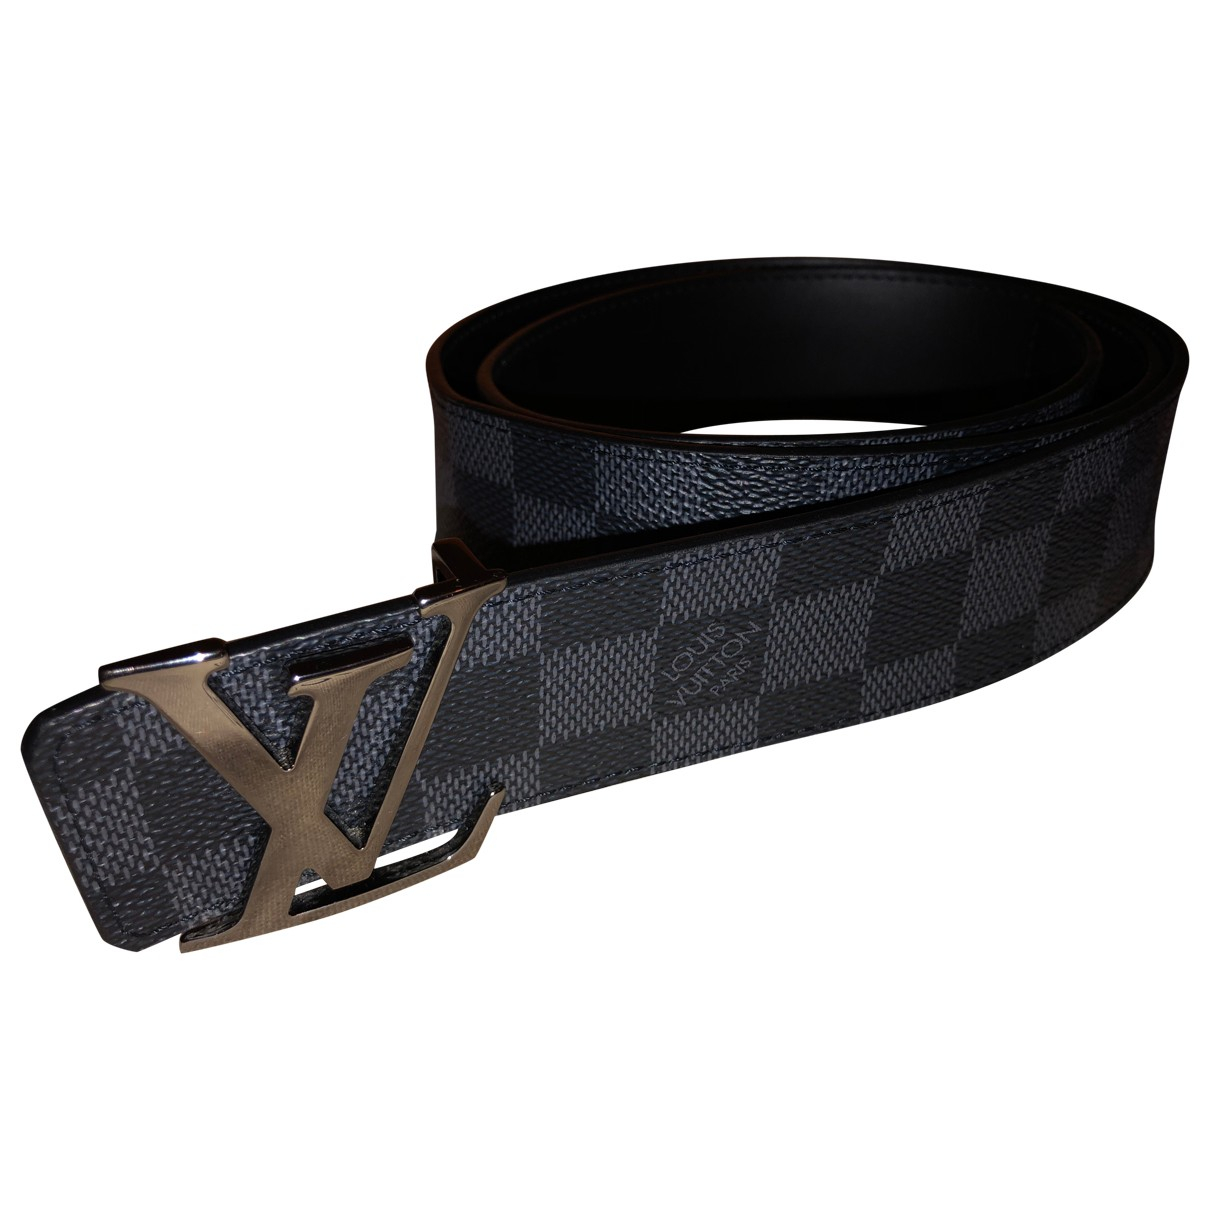 Louis Vuitton Initiales Black Cloth belt for Men 90 cm